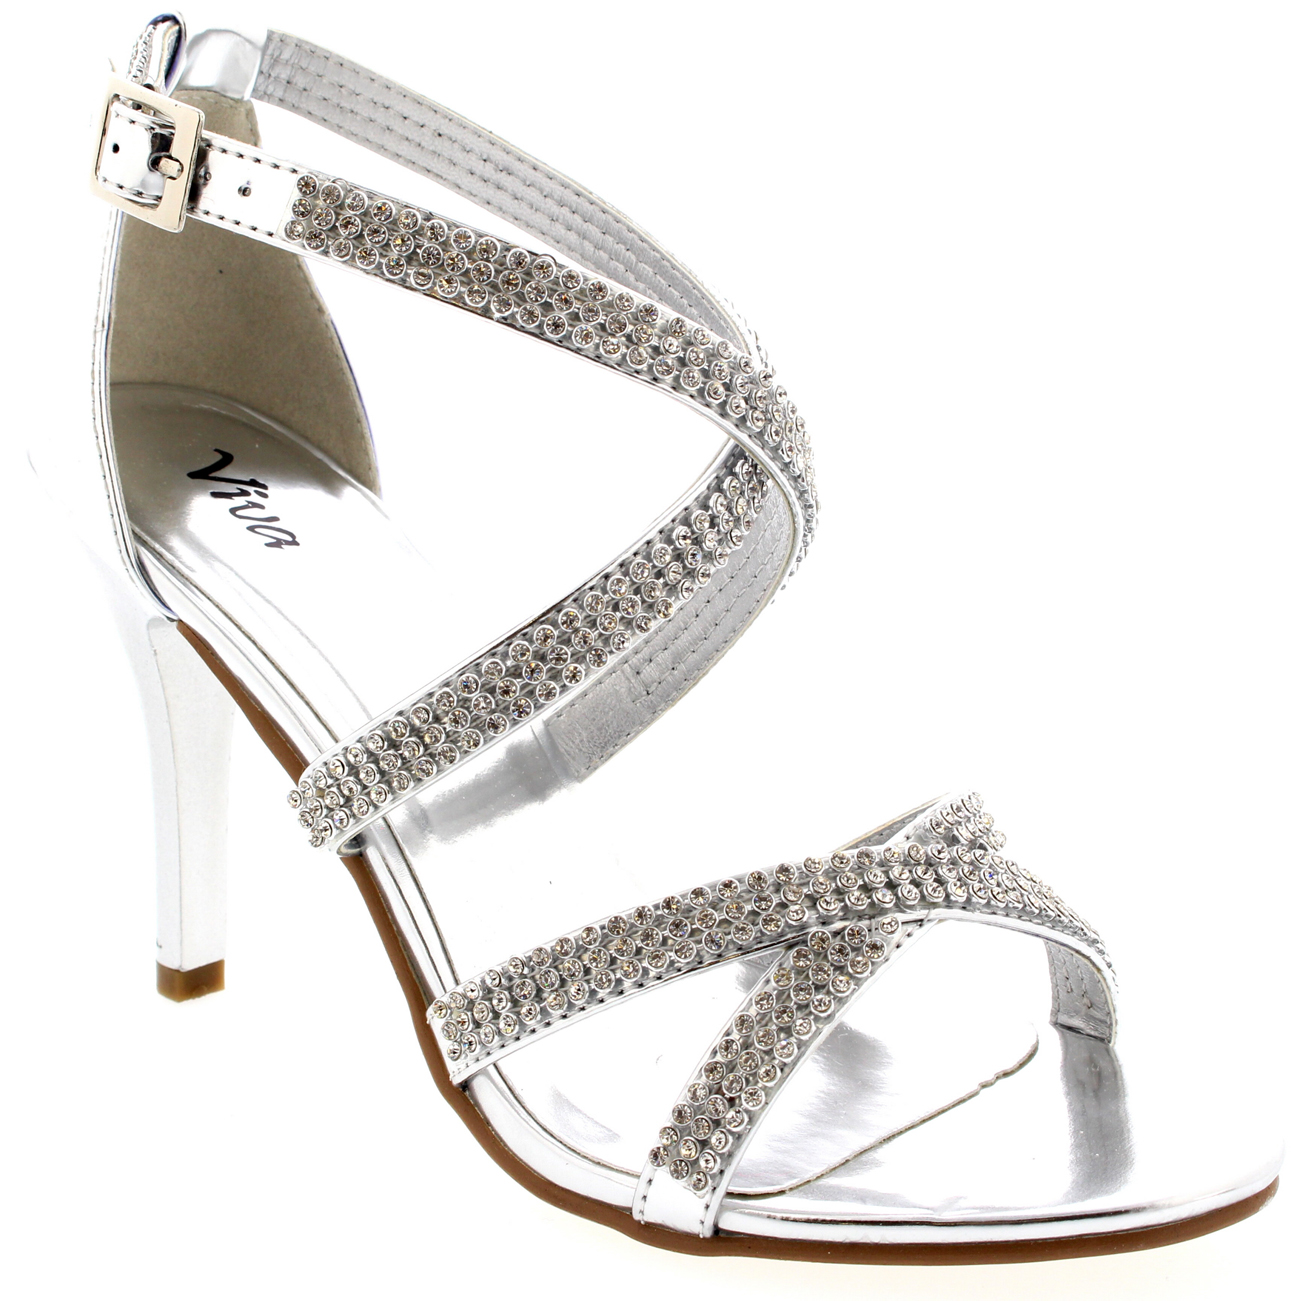 Ladies-Smart-Formal-Dress-Ankle-Strap-Evening-Peep-Toe-Low-Mid-Heels-All-Sizes